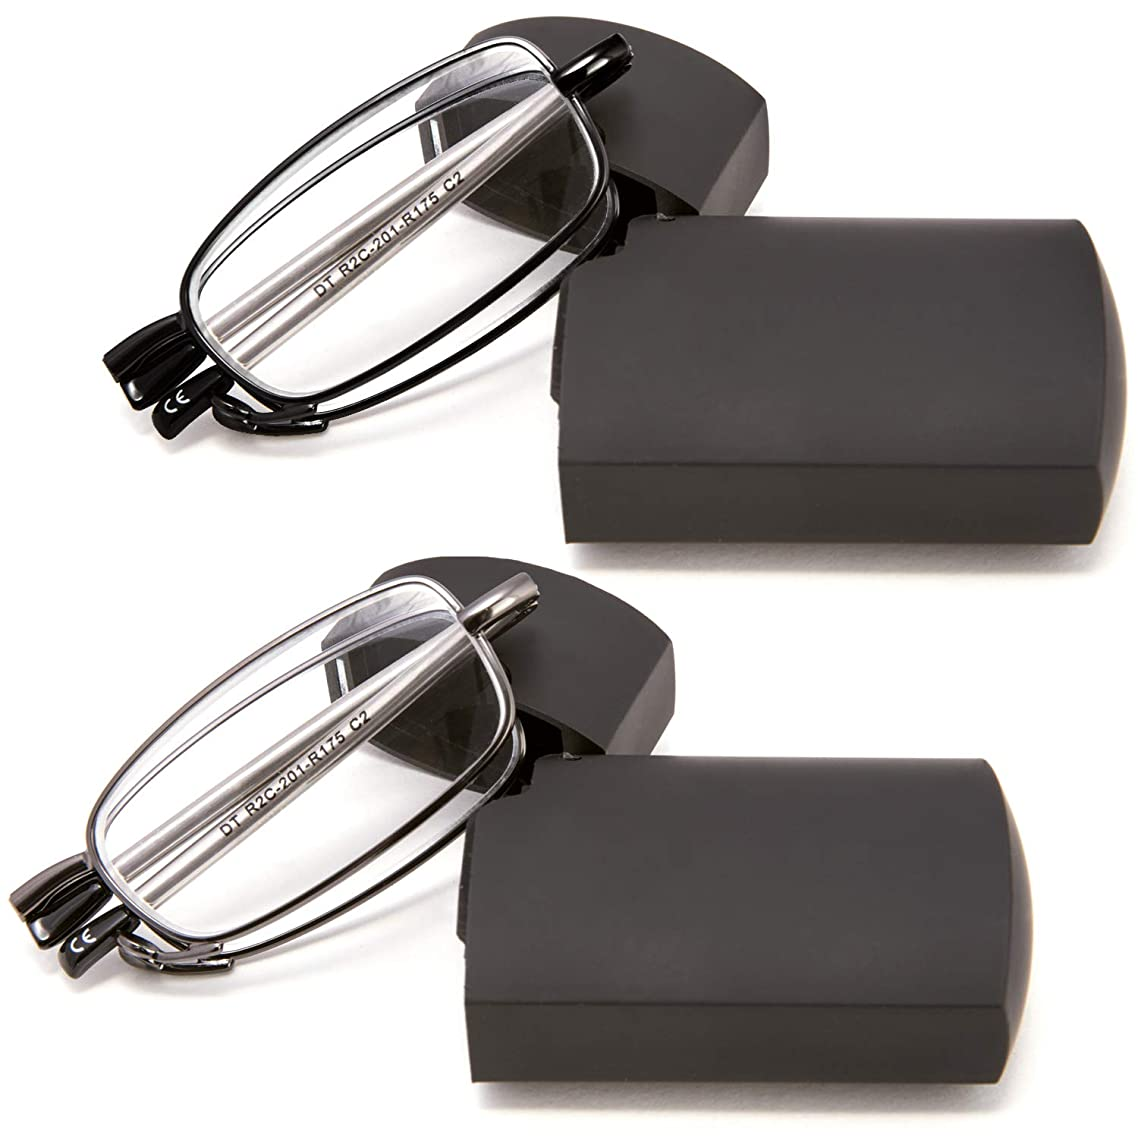 DOUBLETAKE Reading Glasses - 2 Pairs Folding Readers Includes Glasses Case